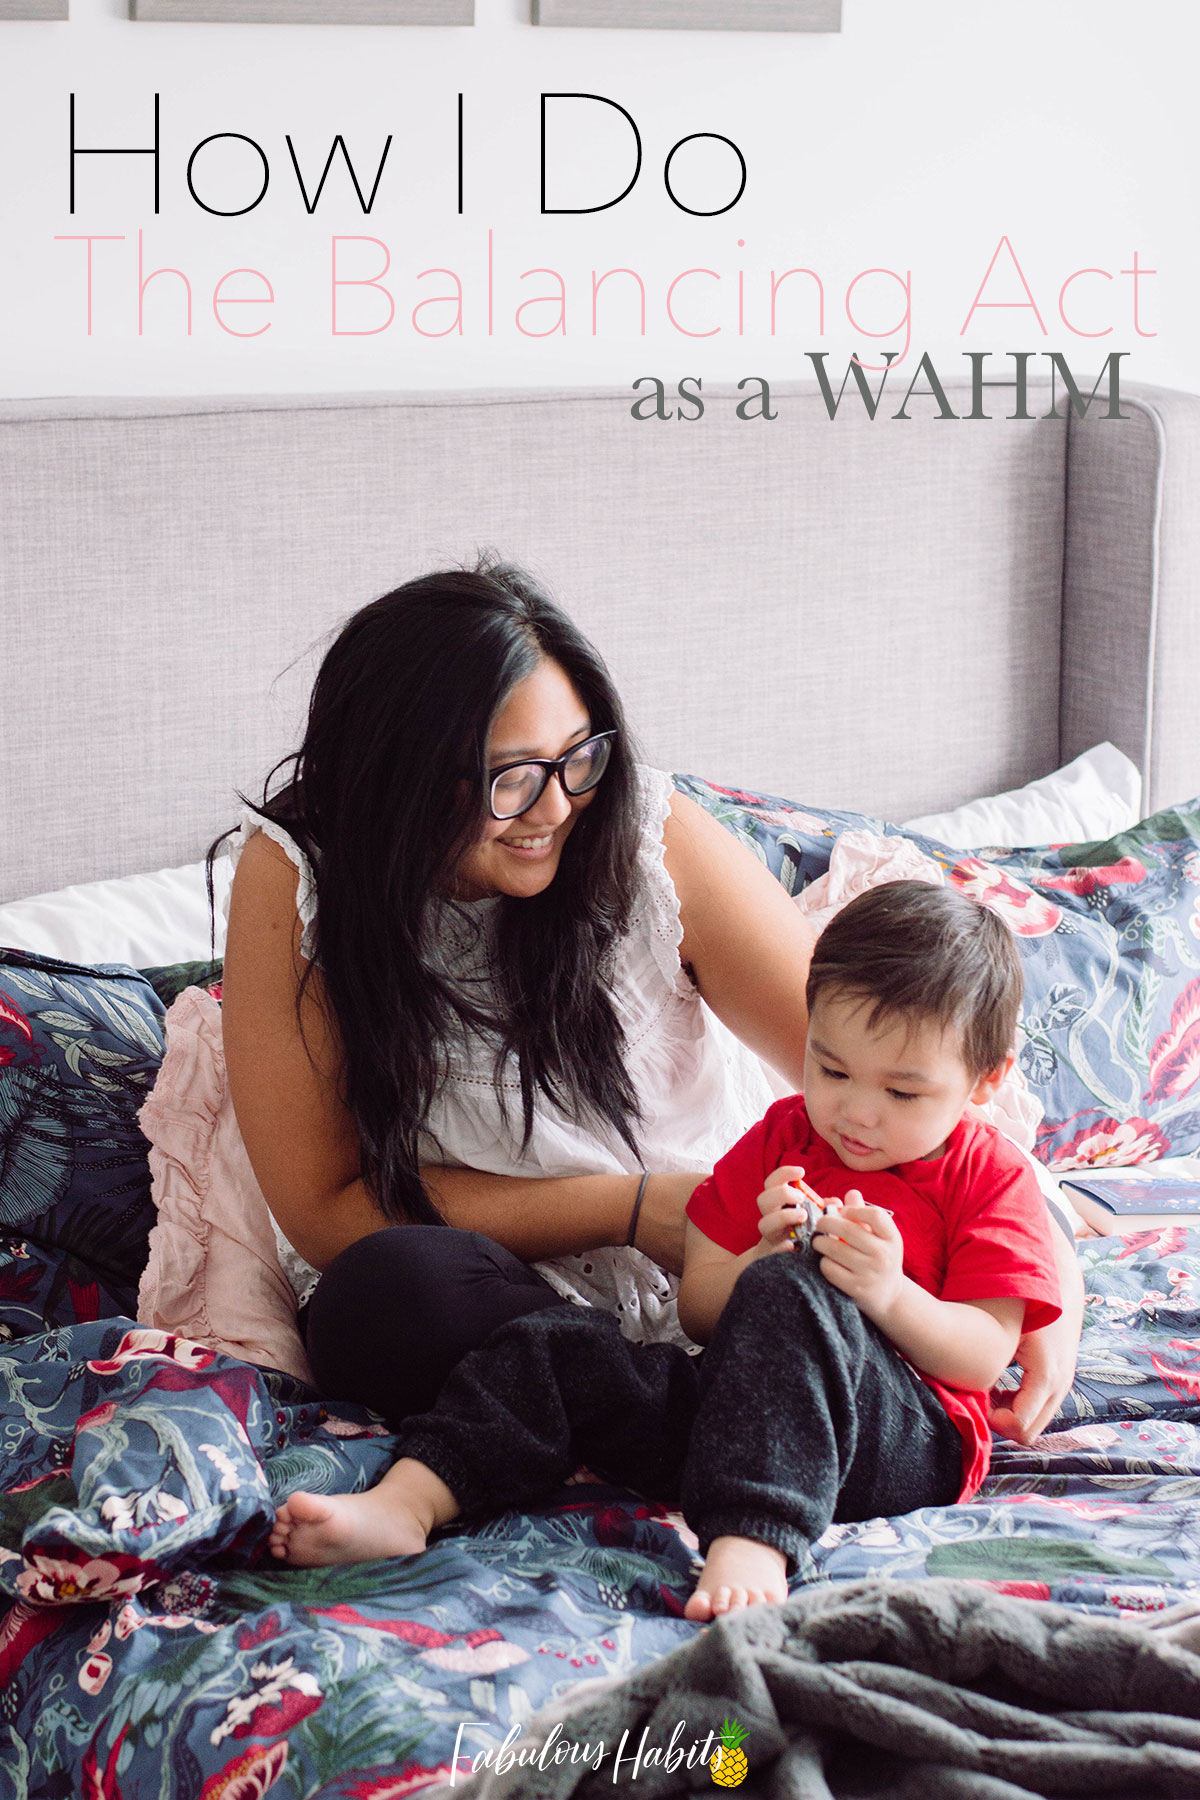 Today, I've gathered some of my best time management tips as an experienced WAHM. Balancing it all is totally possible! #parentingtips